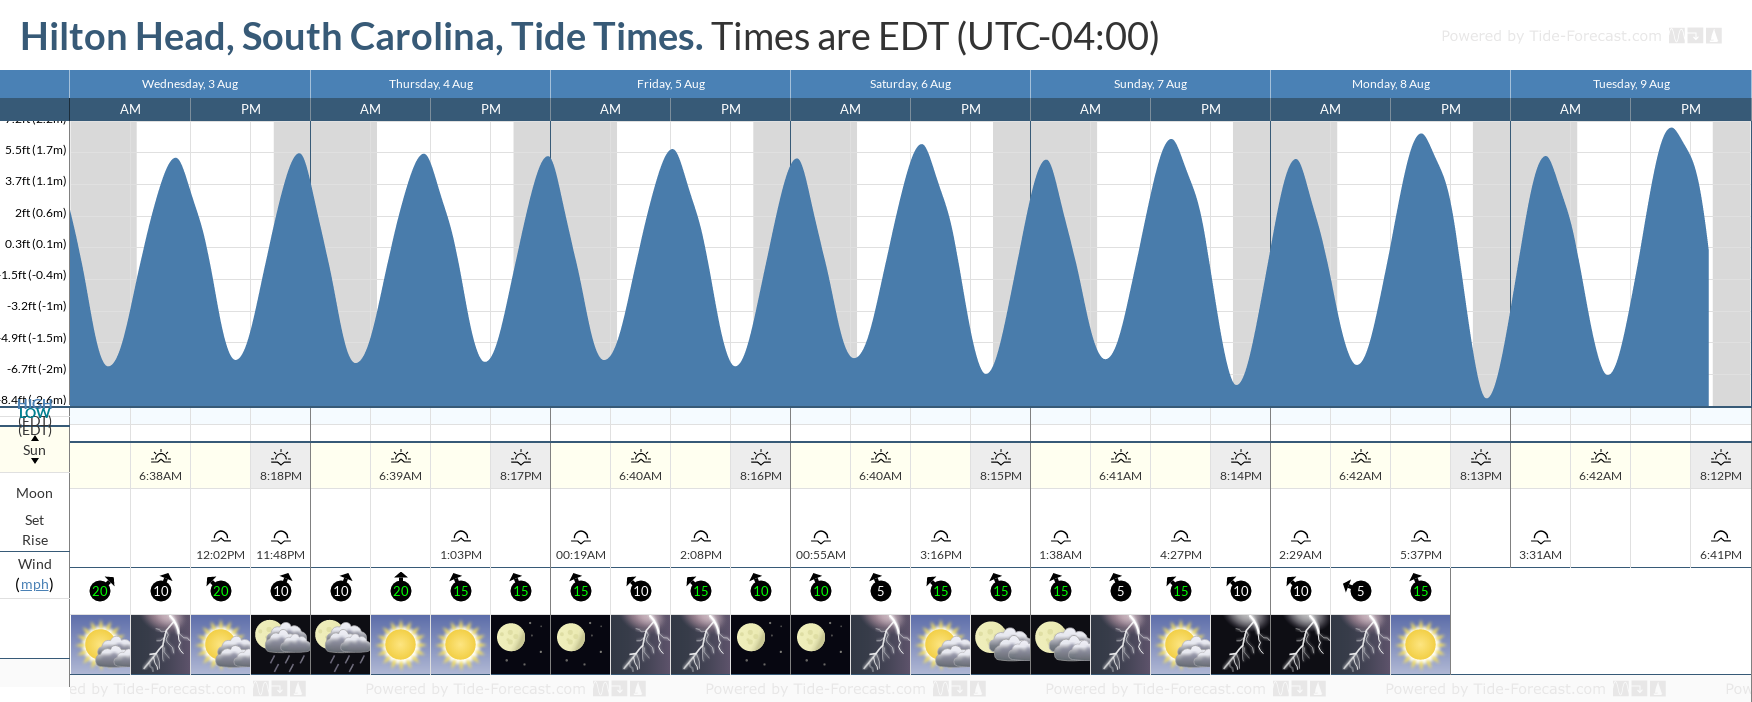 Hilton Head, South Carolina Tide Chart including high and low tide tide times for the next 7 days